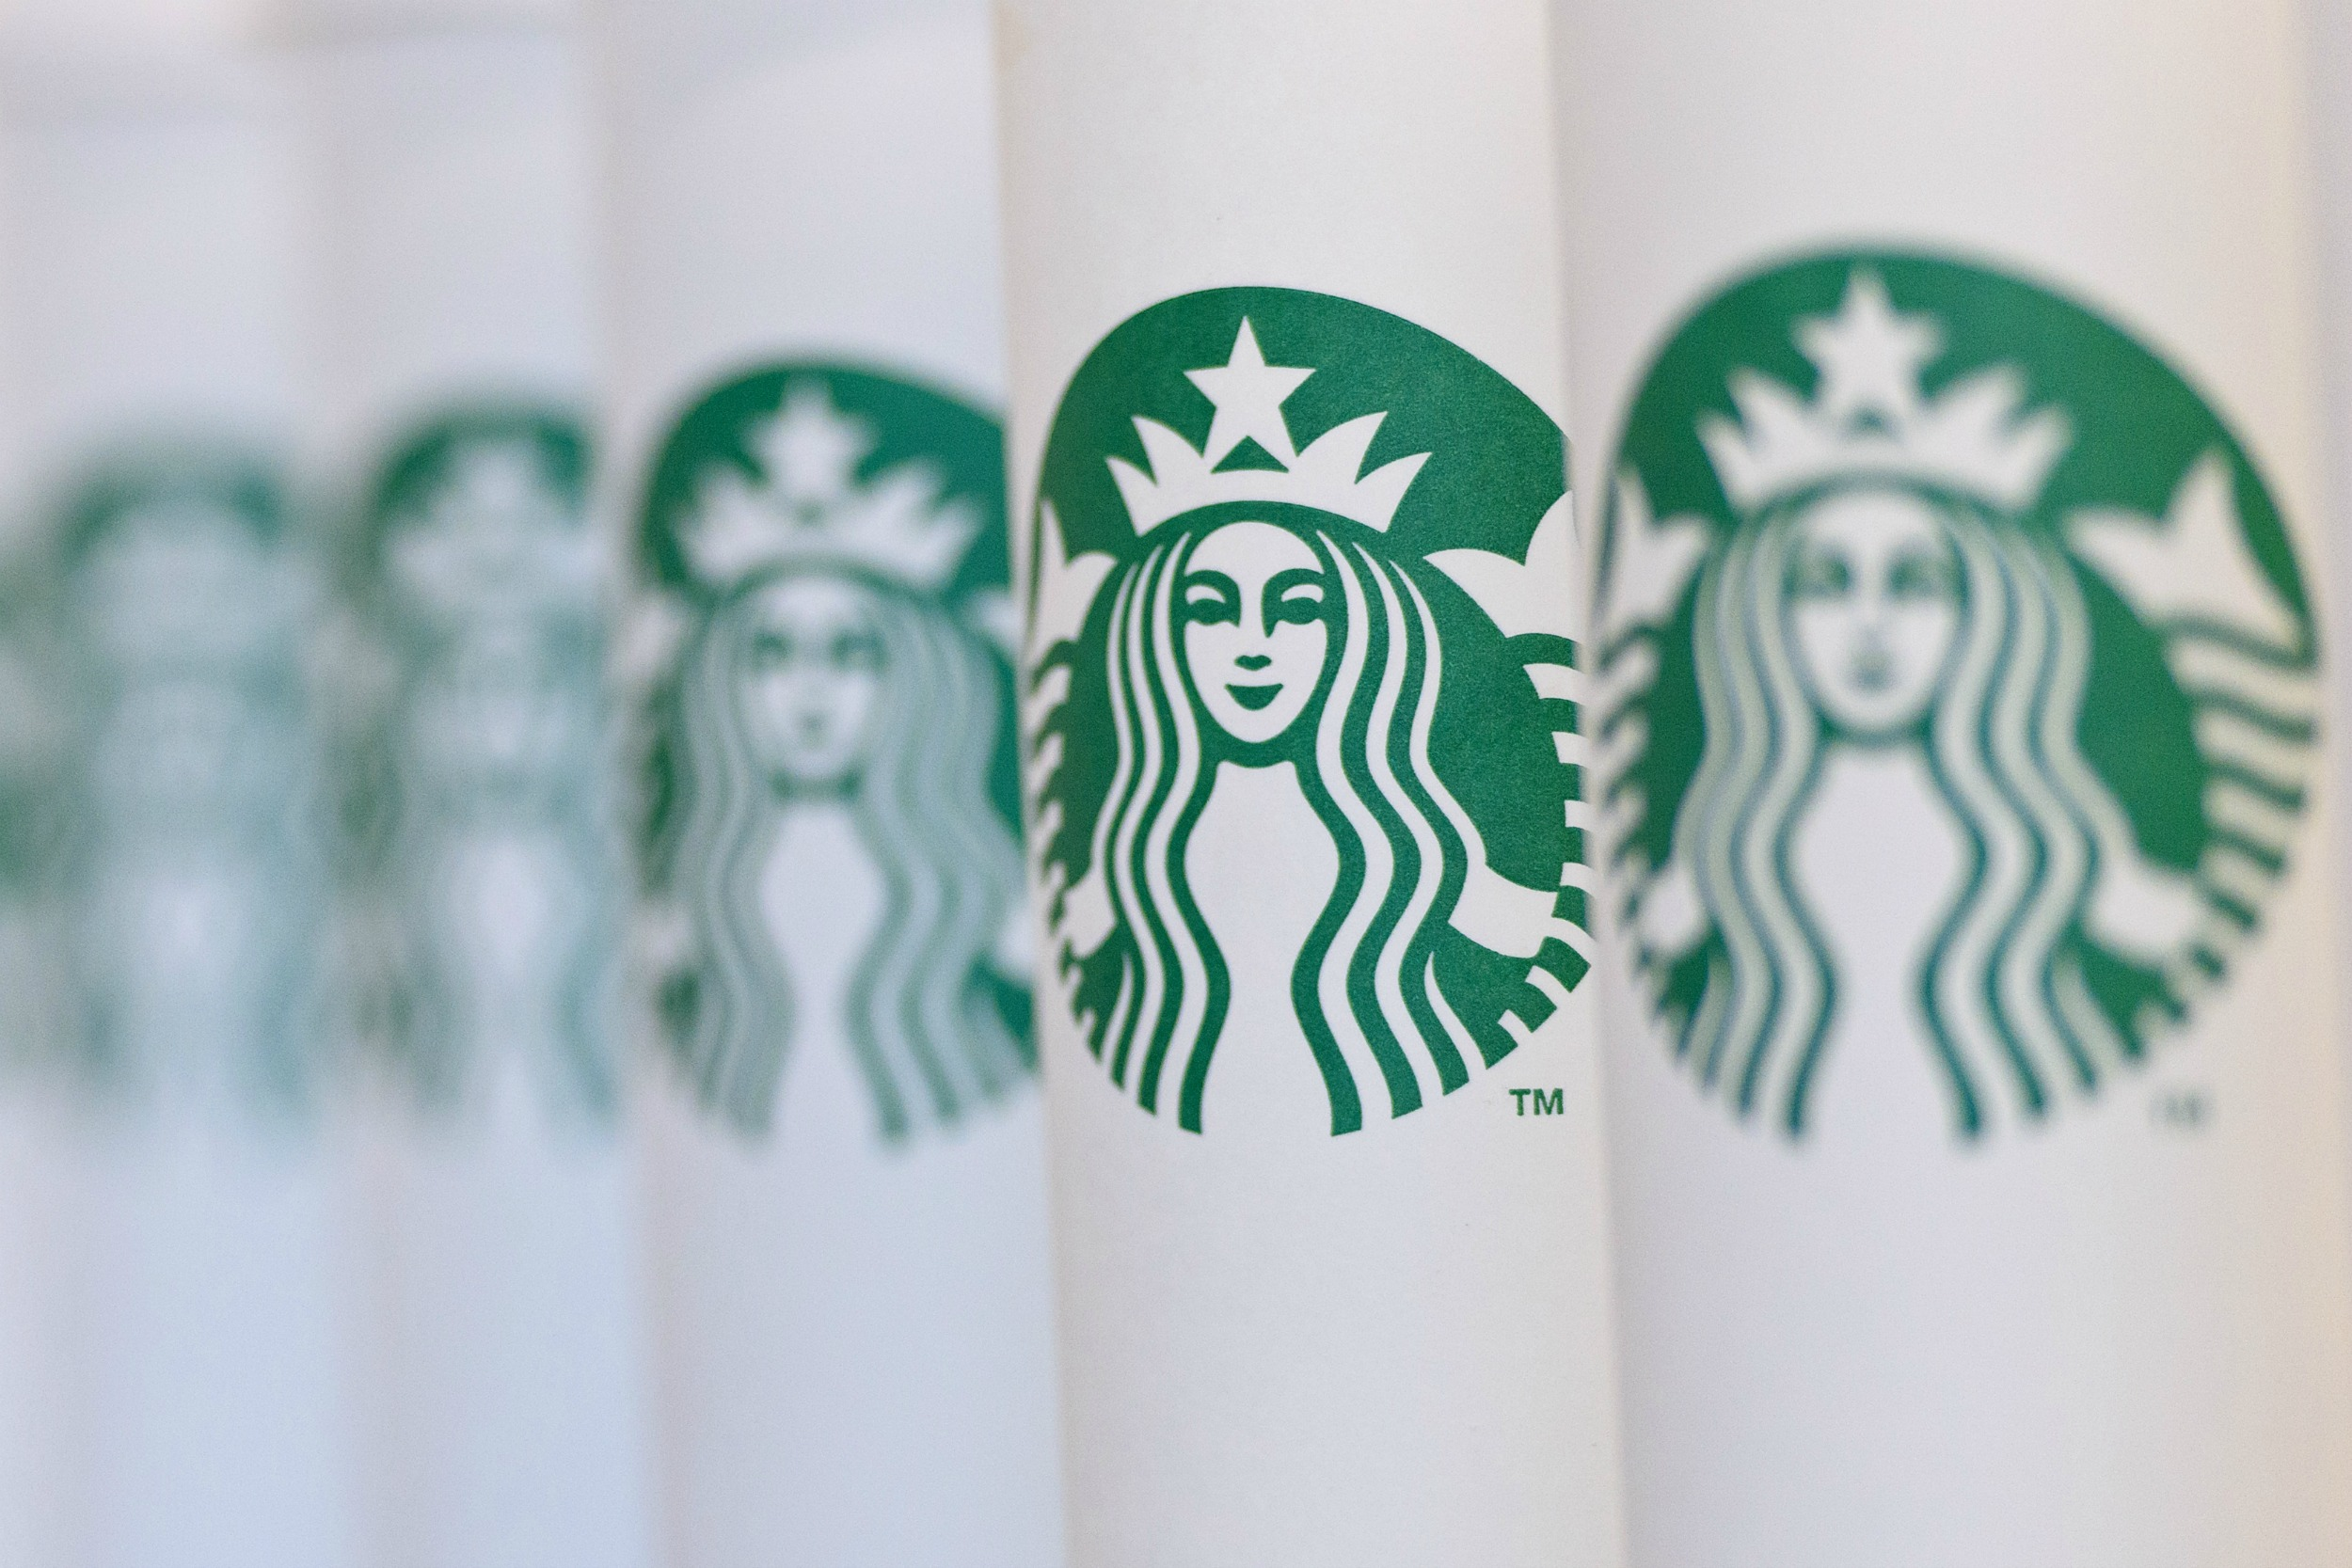 Secrets Starbucks doesn't want you to know